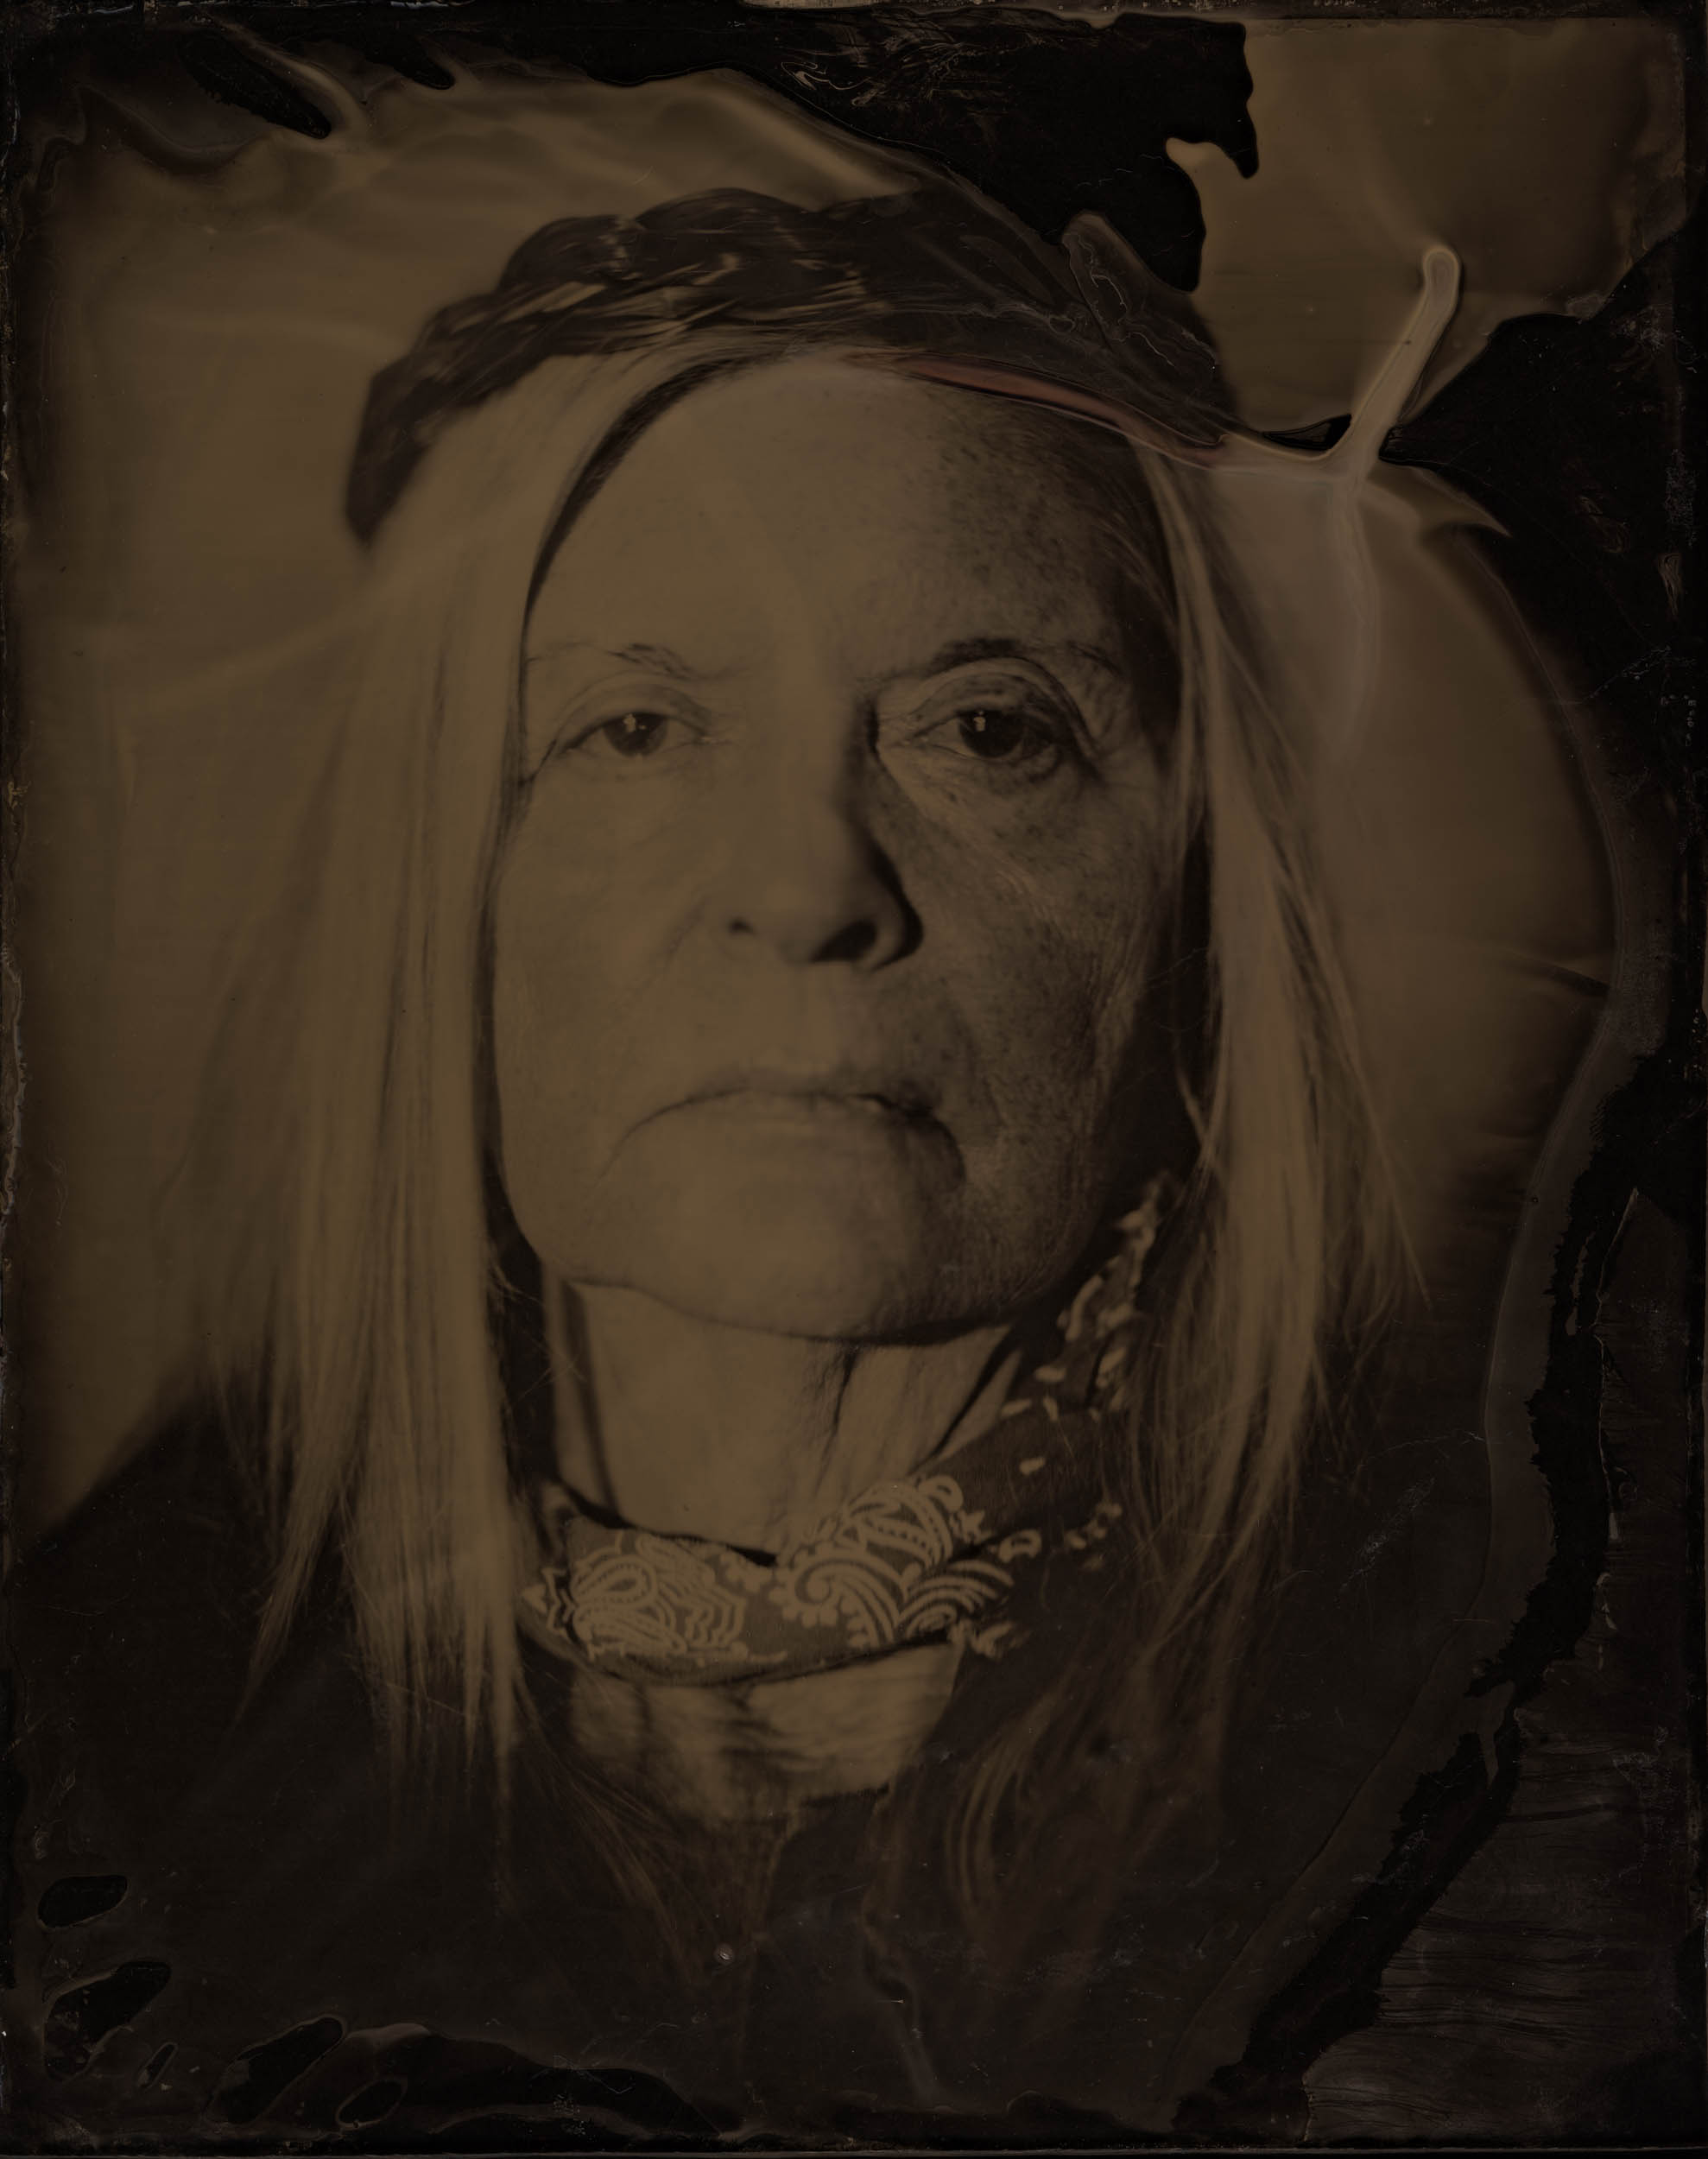 Her Strength, ambrotype original, archival pigment print, 40 in. x 50 in., 2018